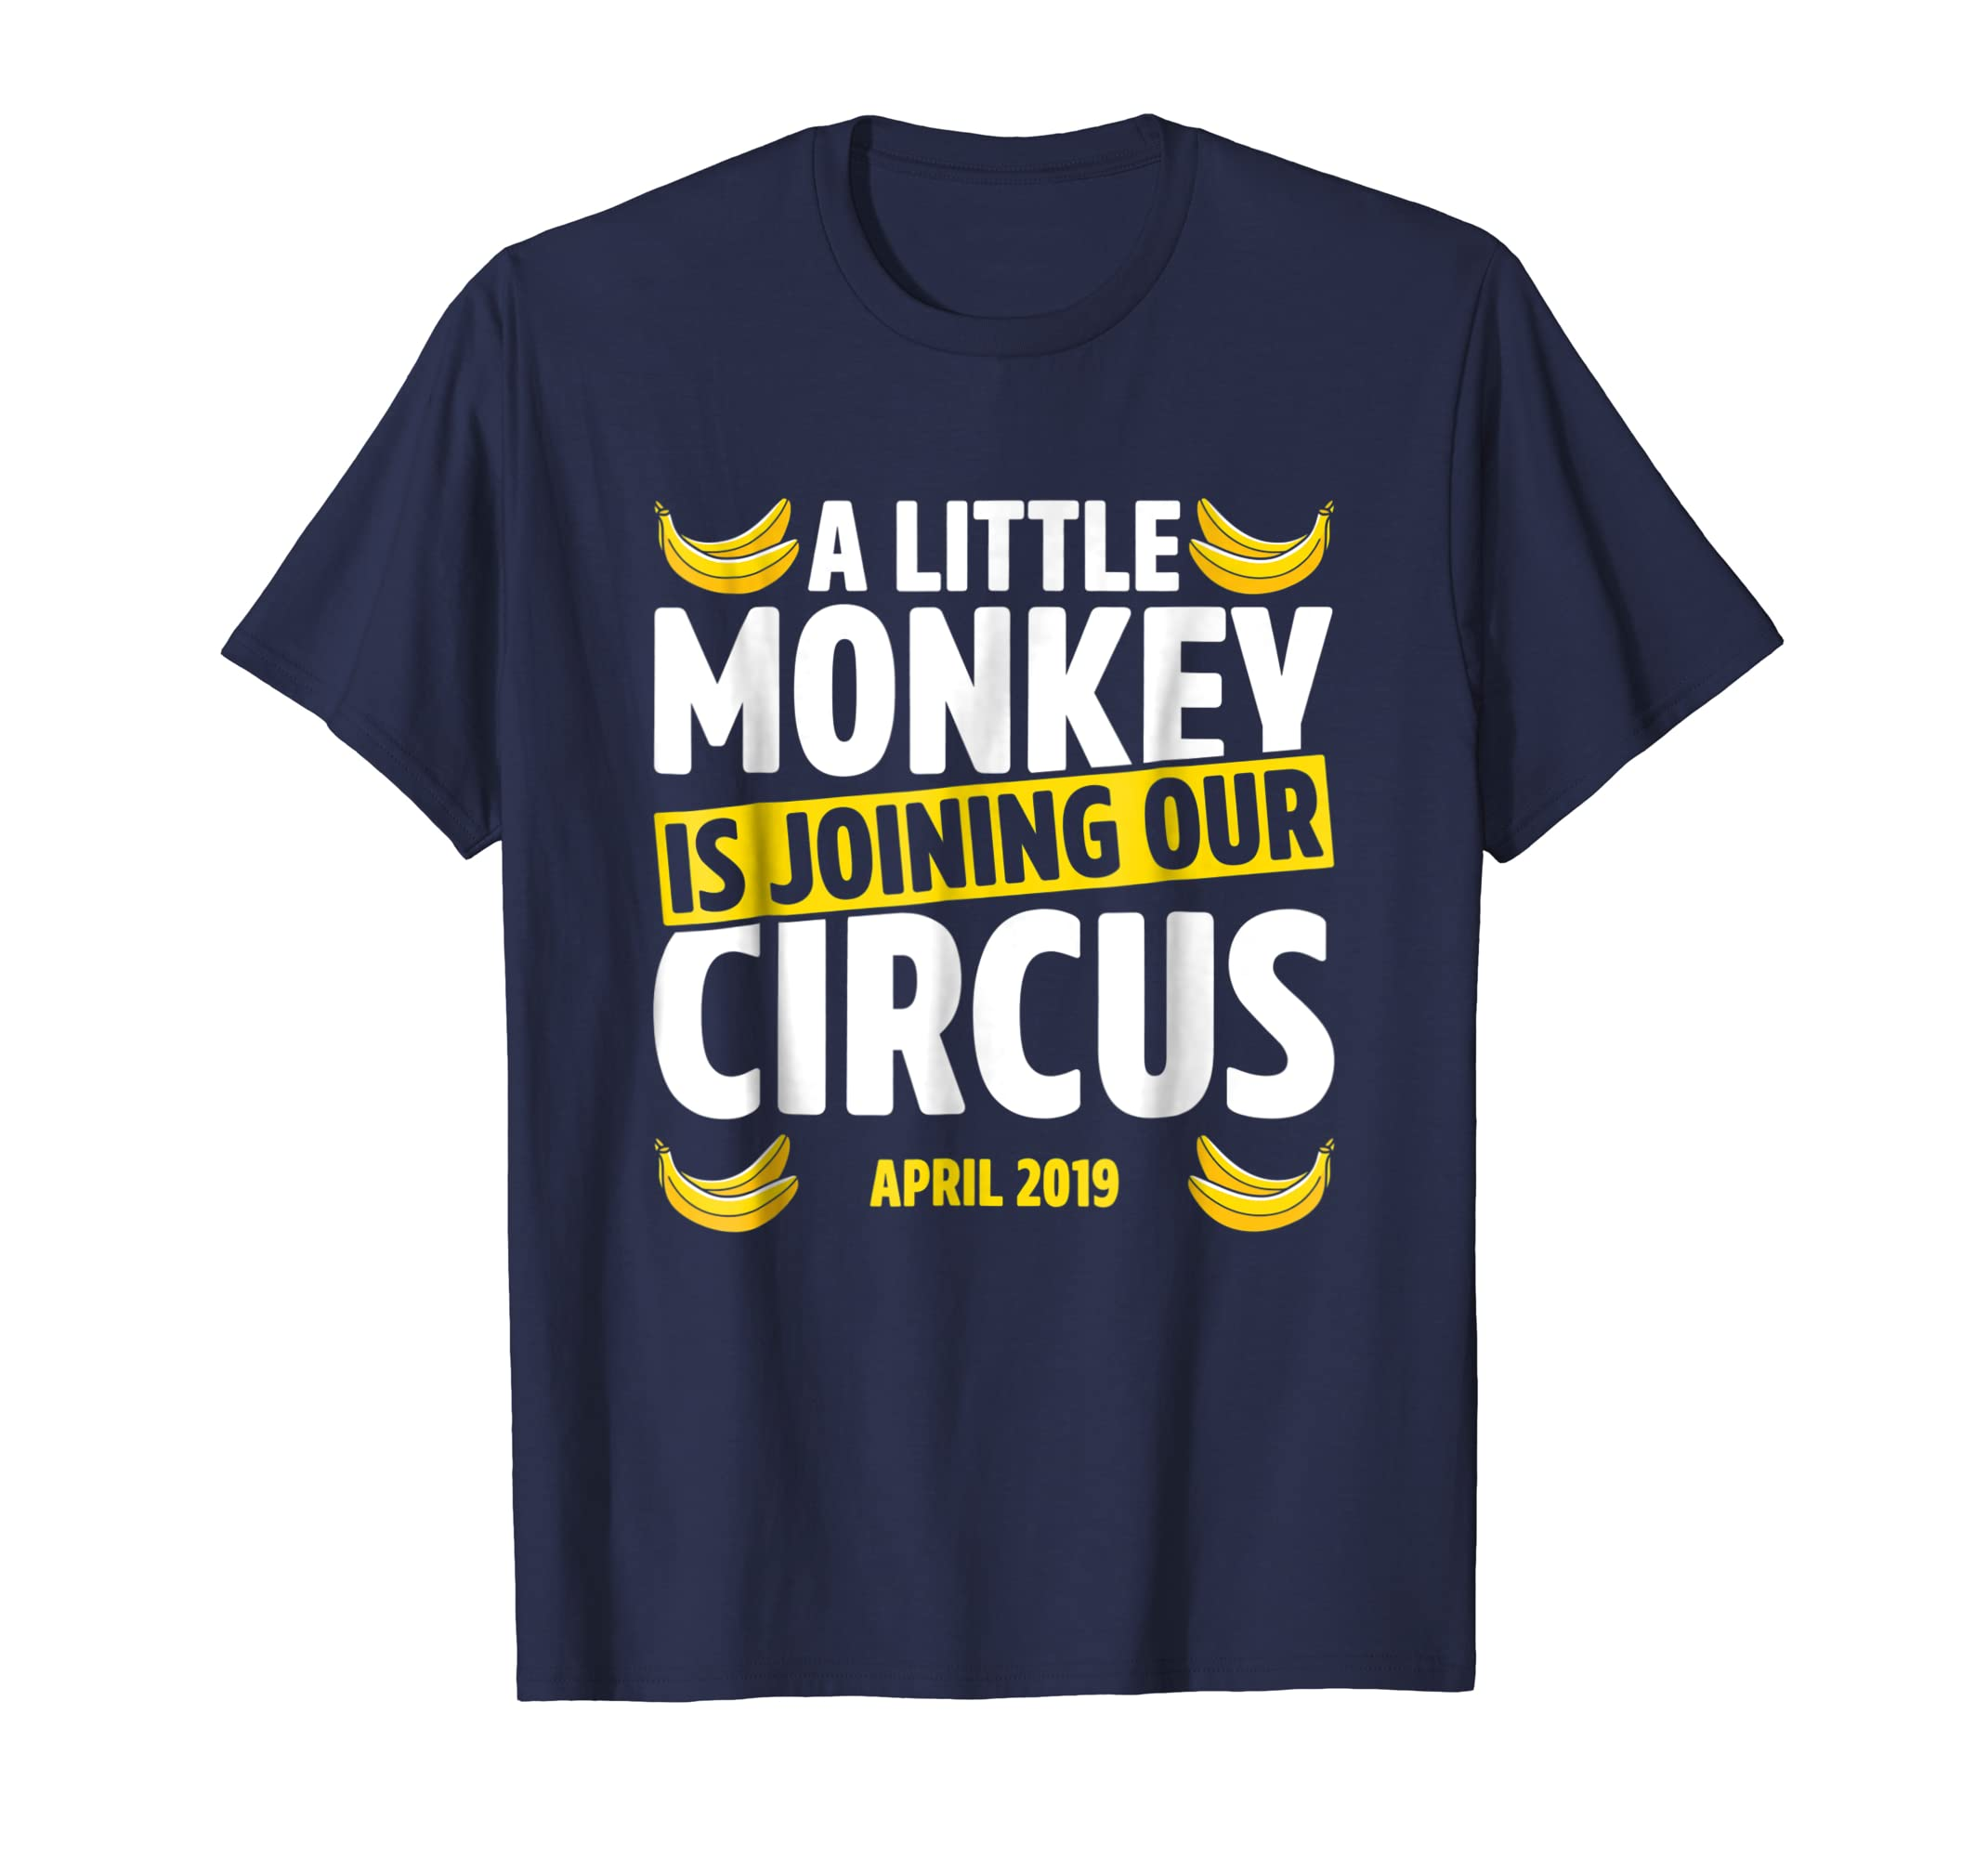 A Little Monkey Is Joining Our Circus April 2019 T Shirt-azvn